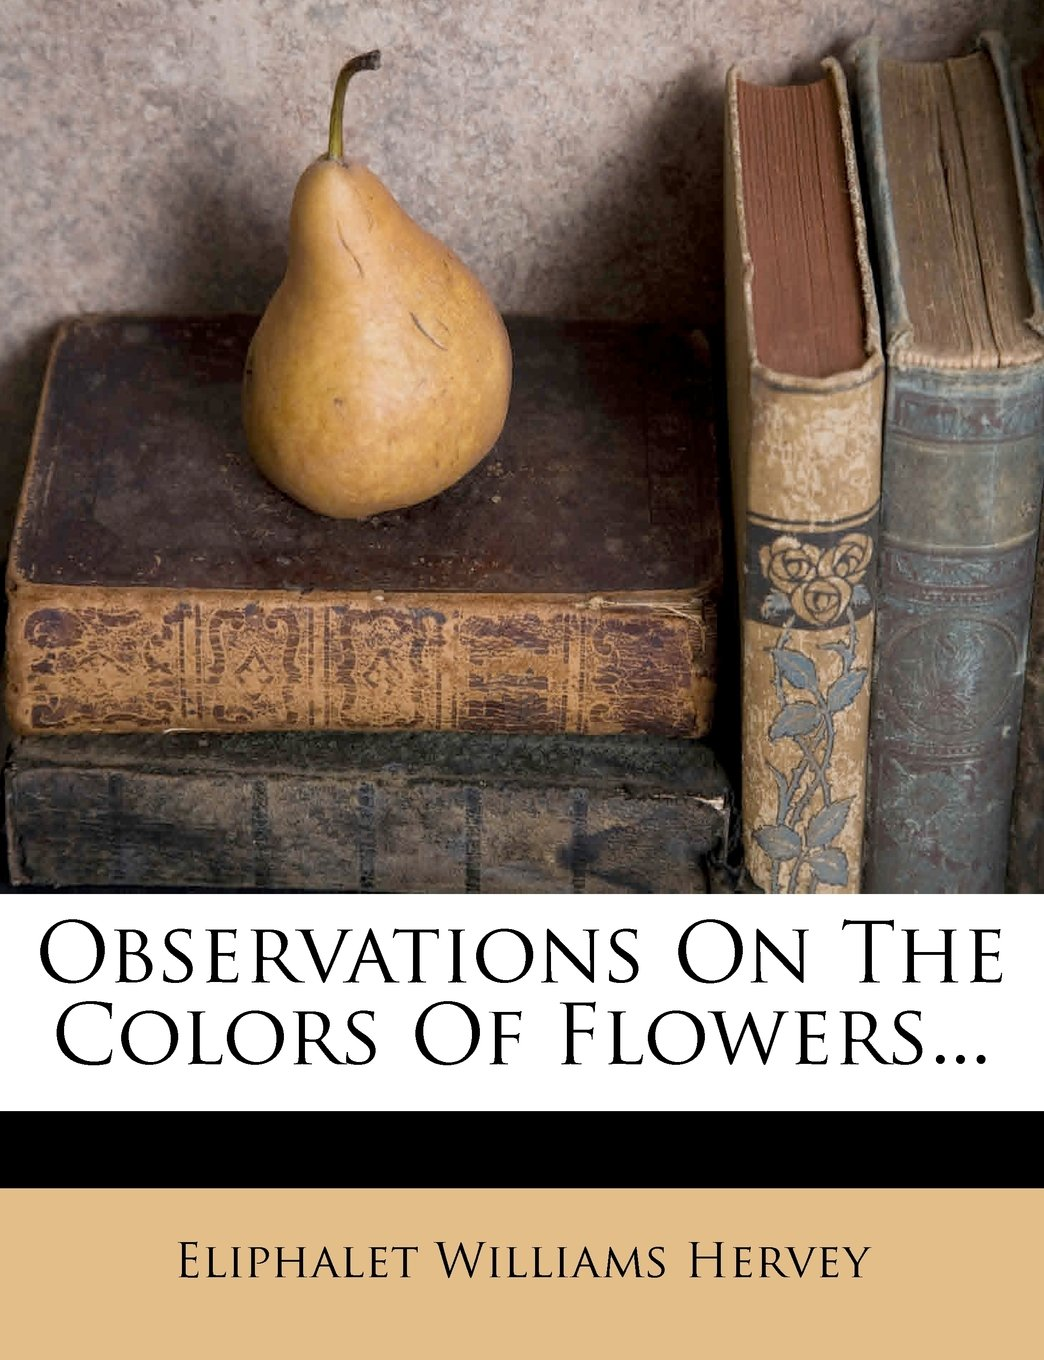 Observations on the Colors of Flowers... pdf